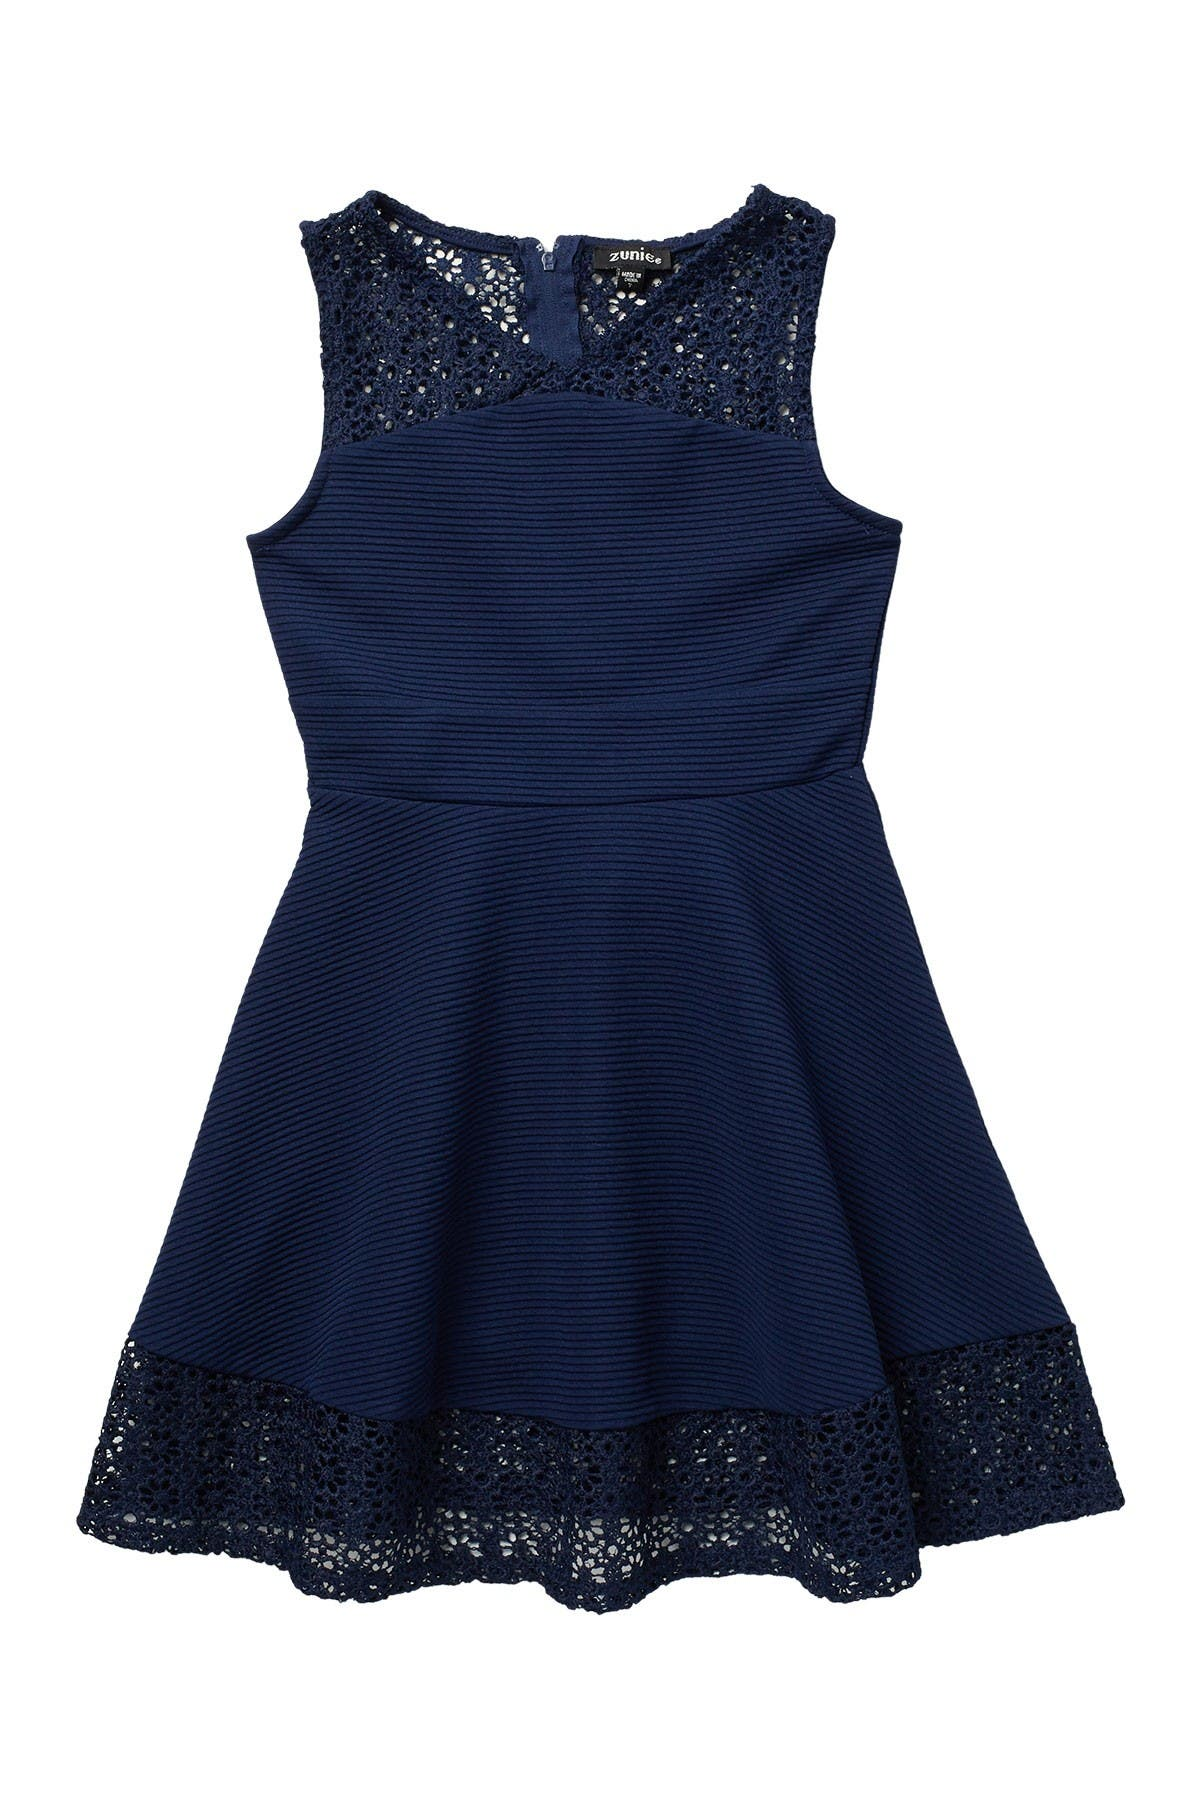 Image of Zunie Lace Trimmed Sleeveless Skater Dress